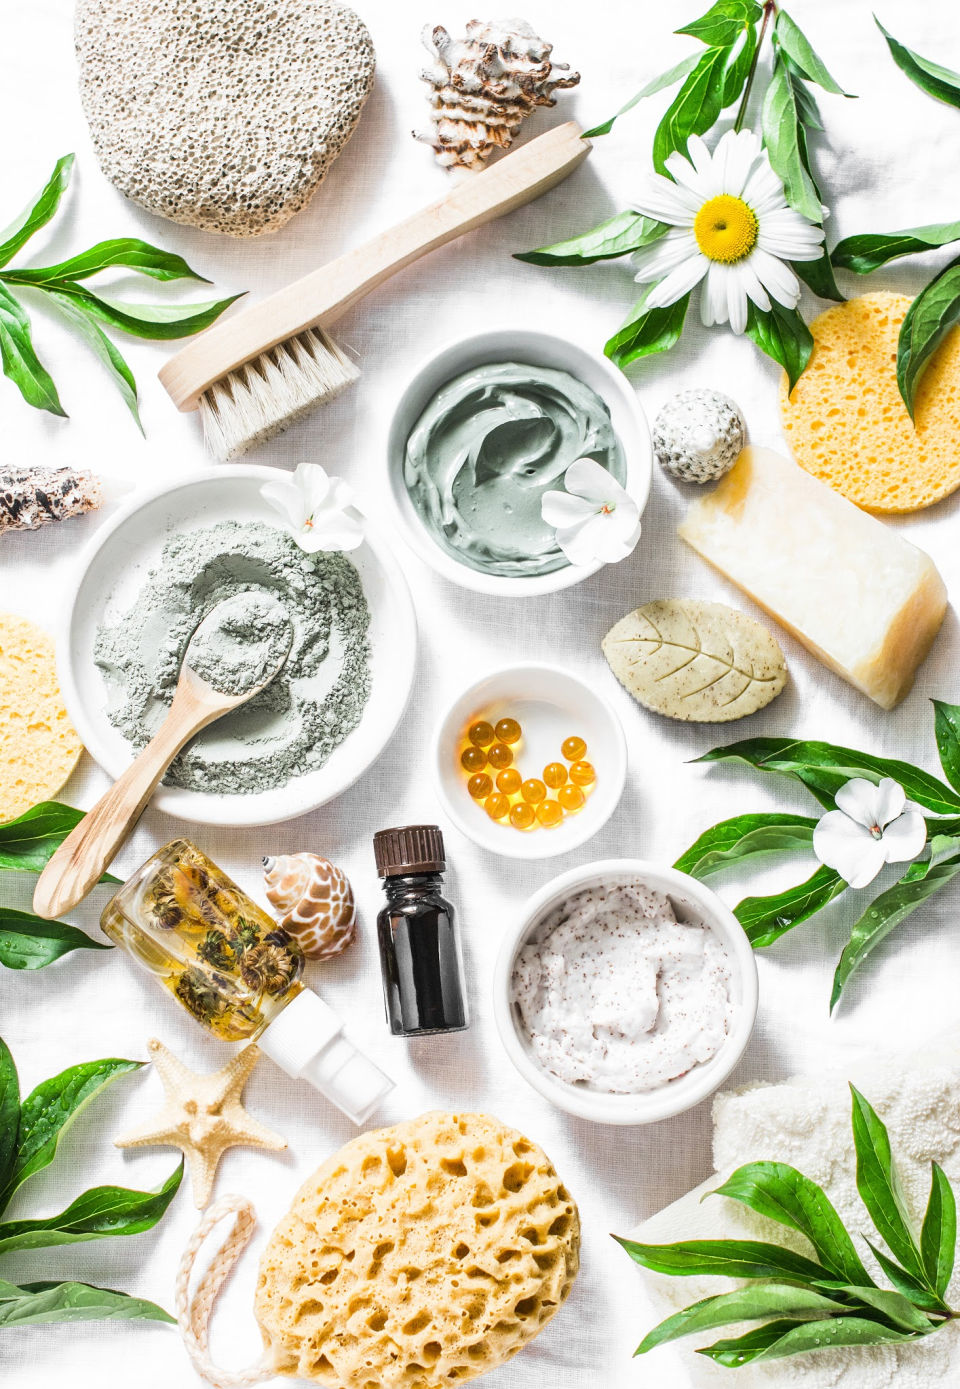 20 Diy Face Mask For Acne Using Natural Ingredients